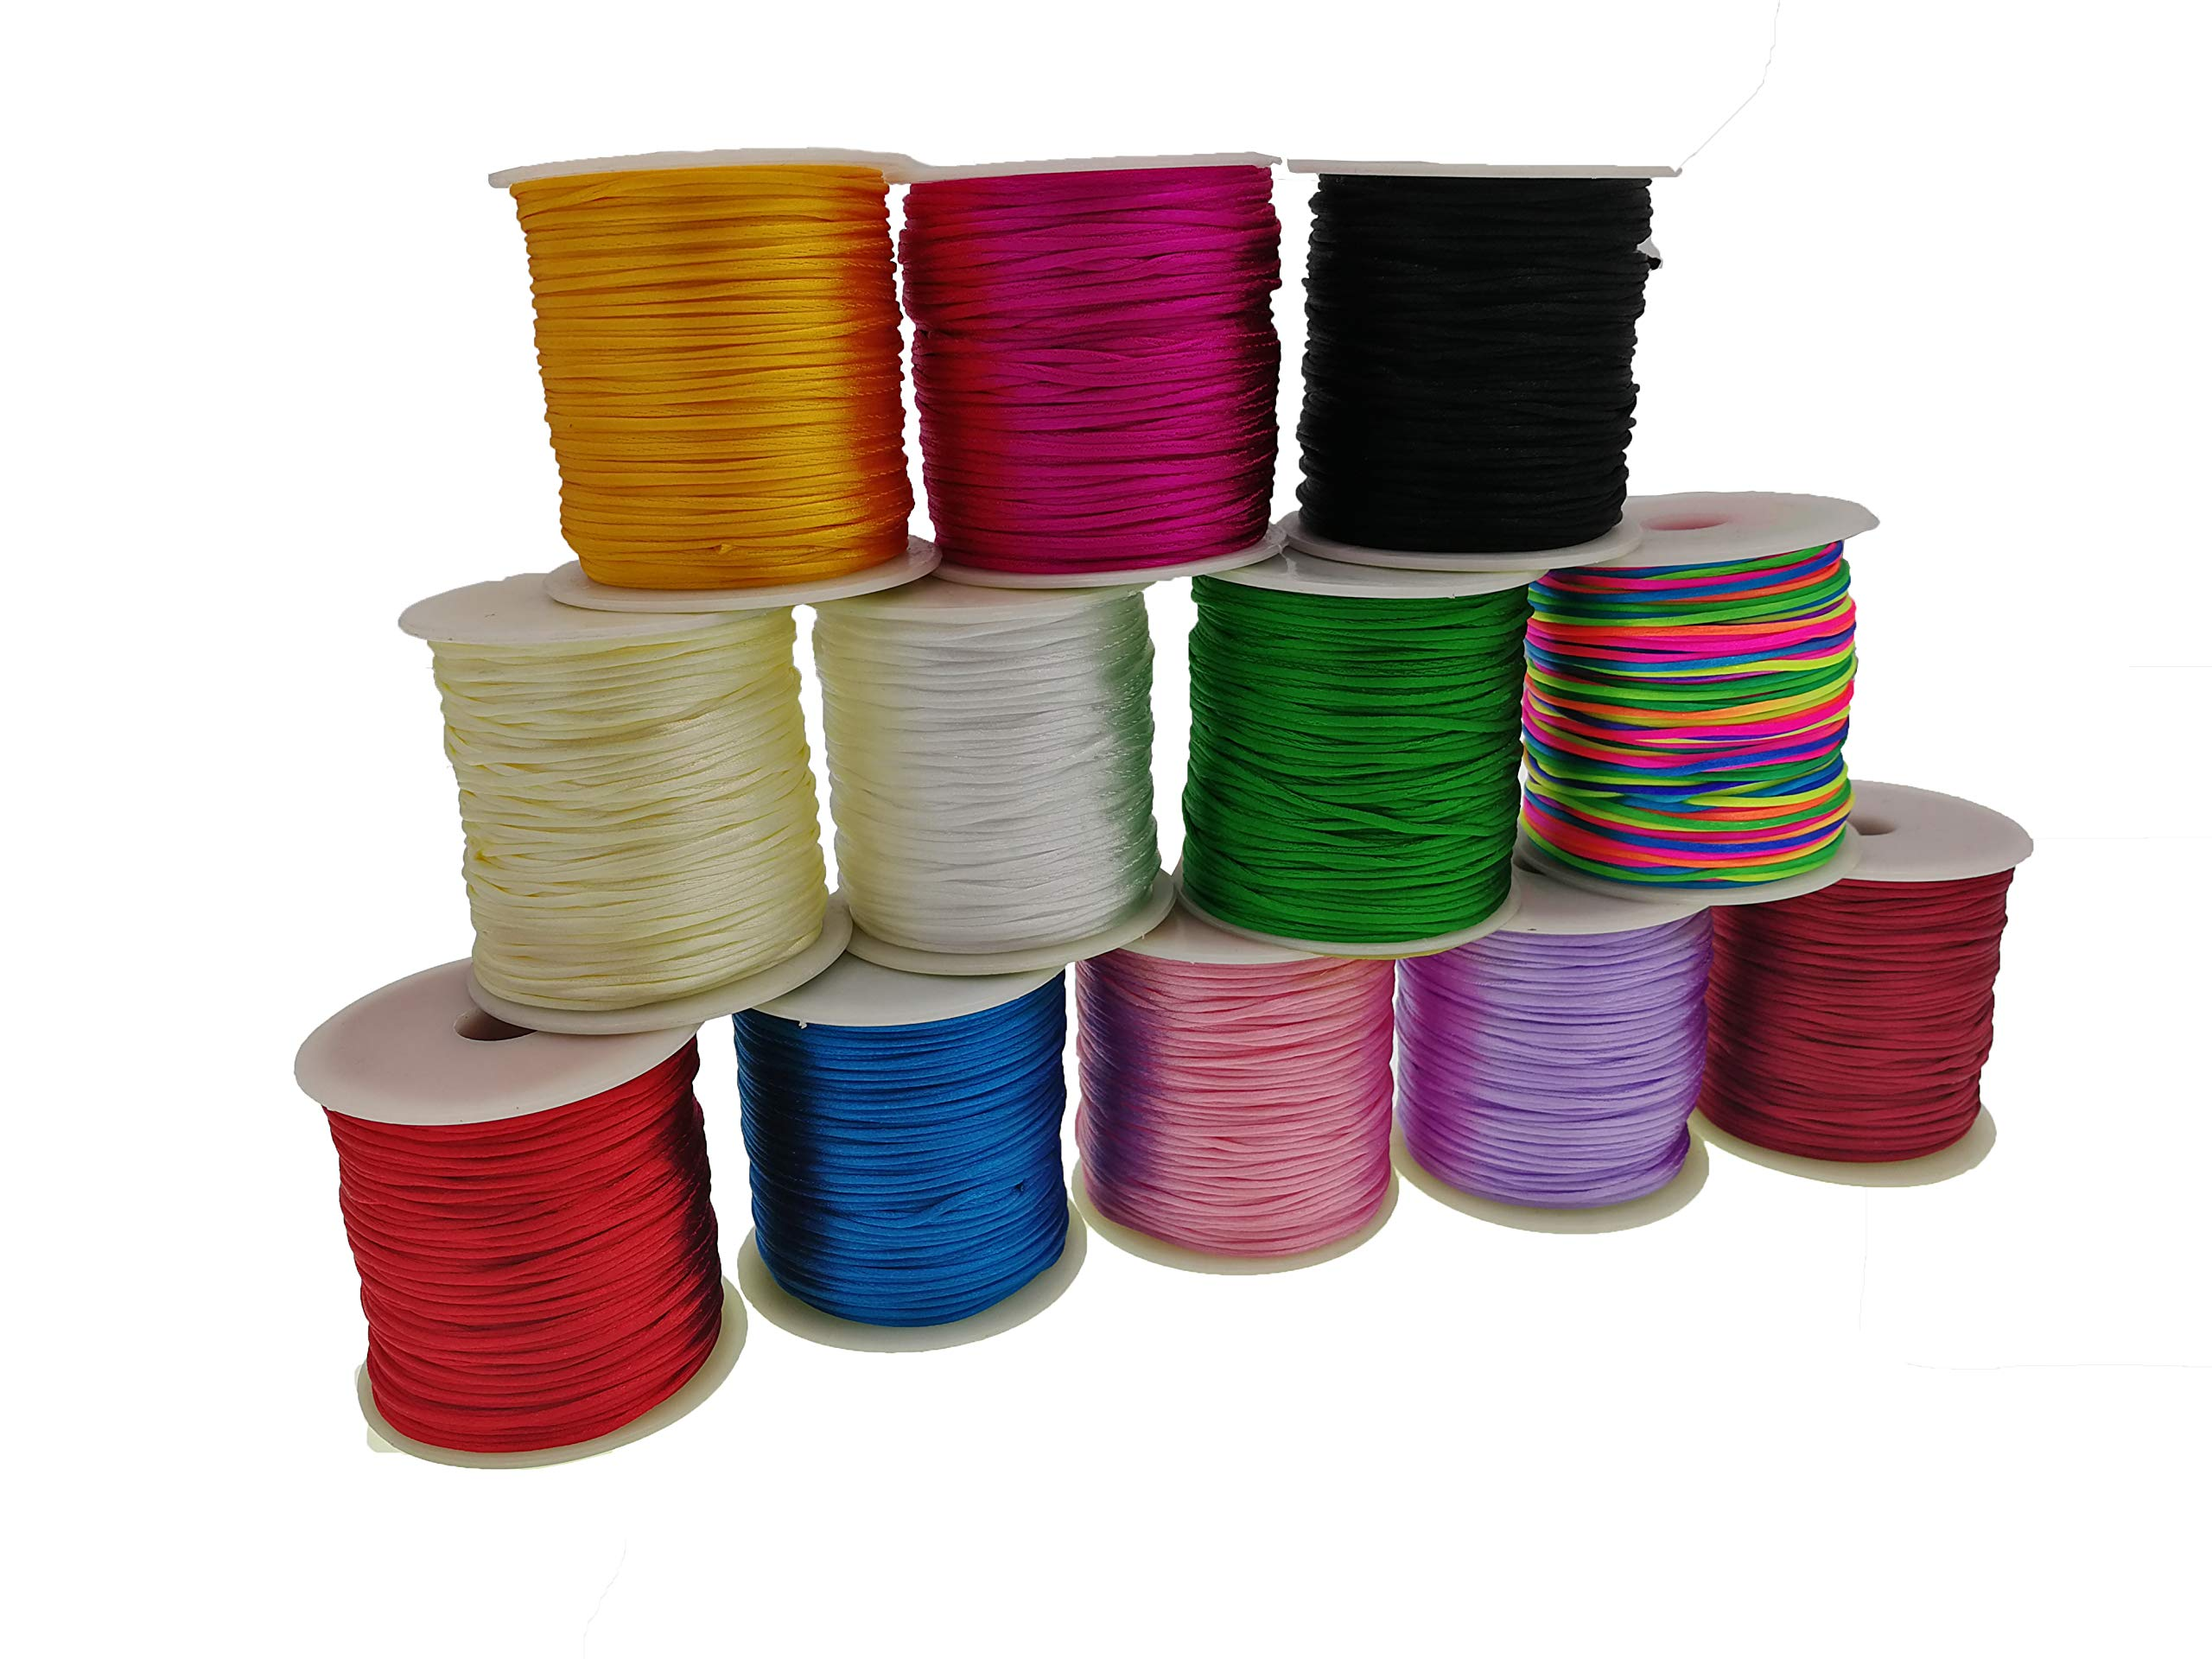 10 Yards Each Color, Bright Colors Inspirelle 10-Color 1.8mm Satin Nylon Trim Cord Rattail Silk Cord Chinese Knot Thread for Jewelry Making